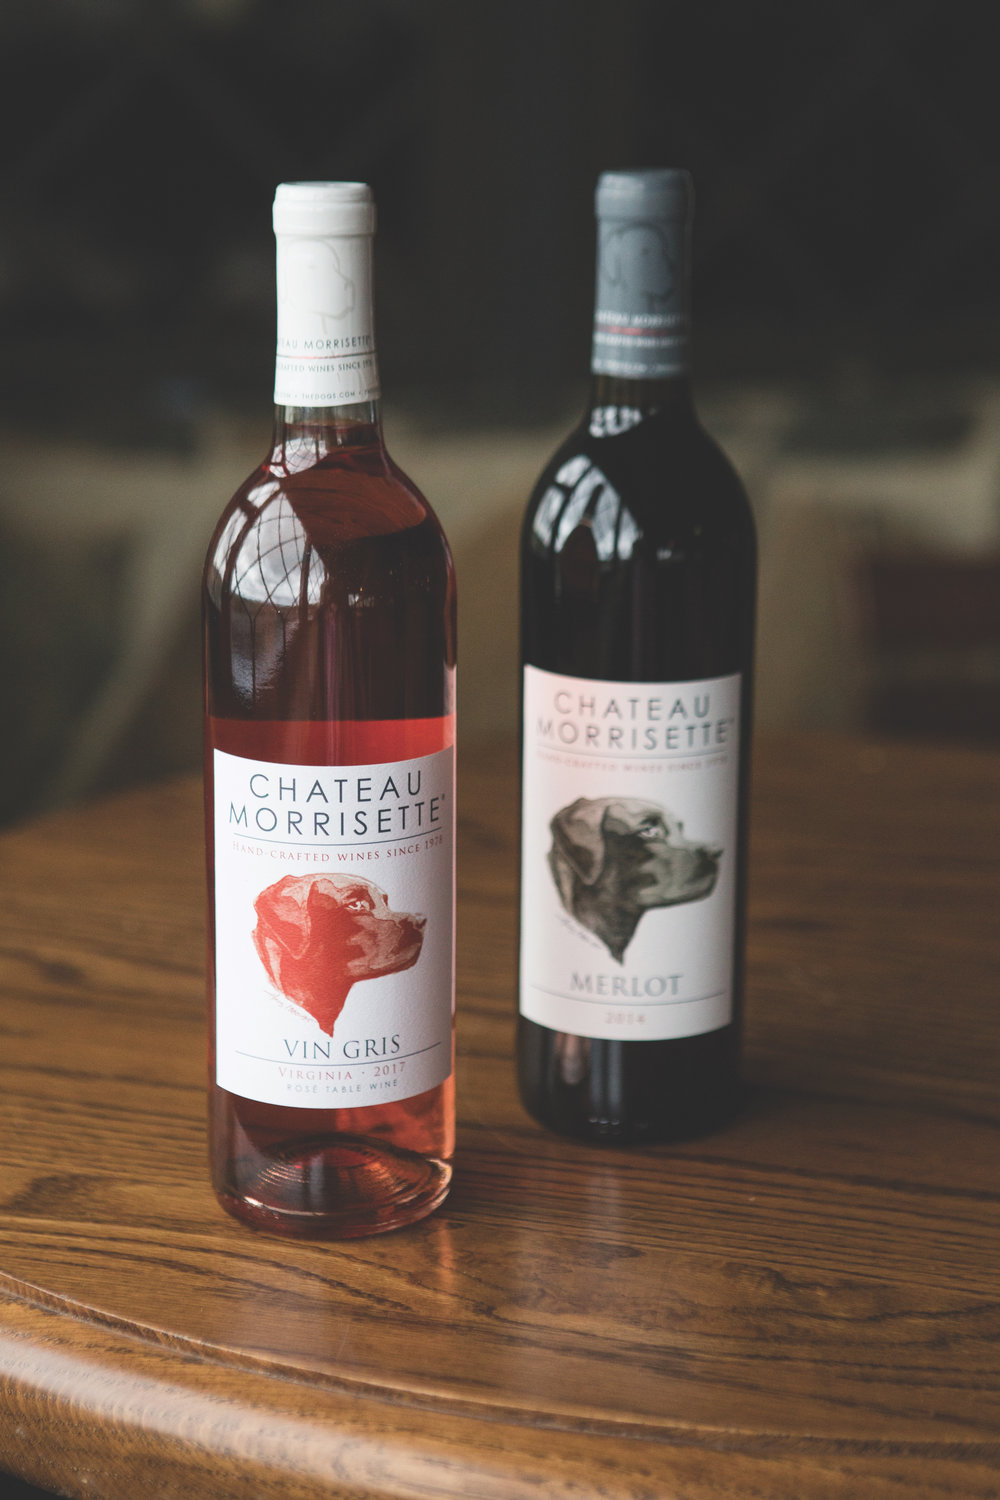 Wines from Chateau Morrisette